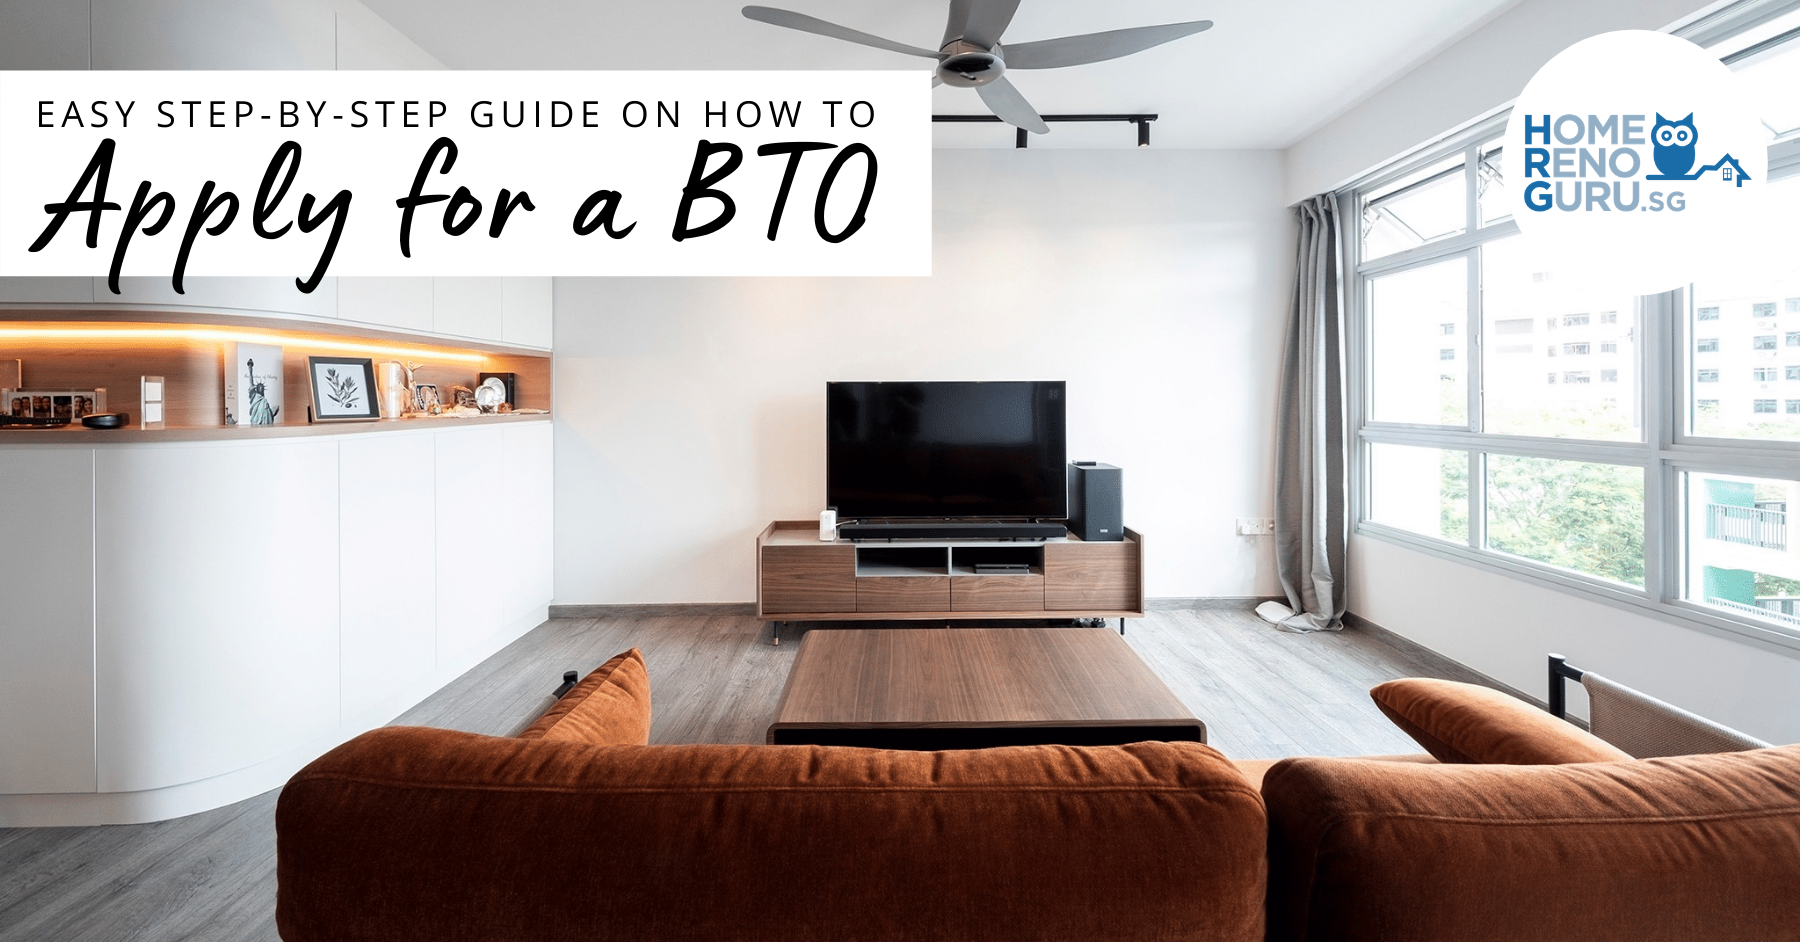 Living room of a BTO